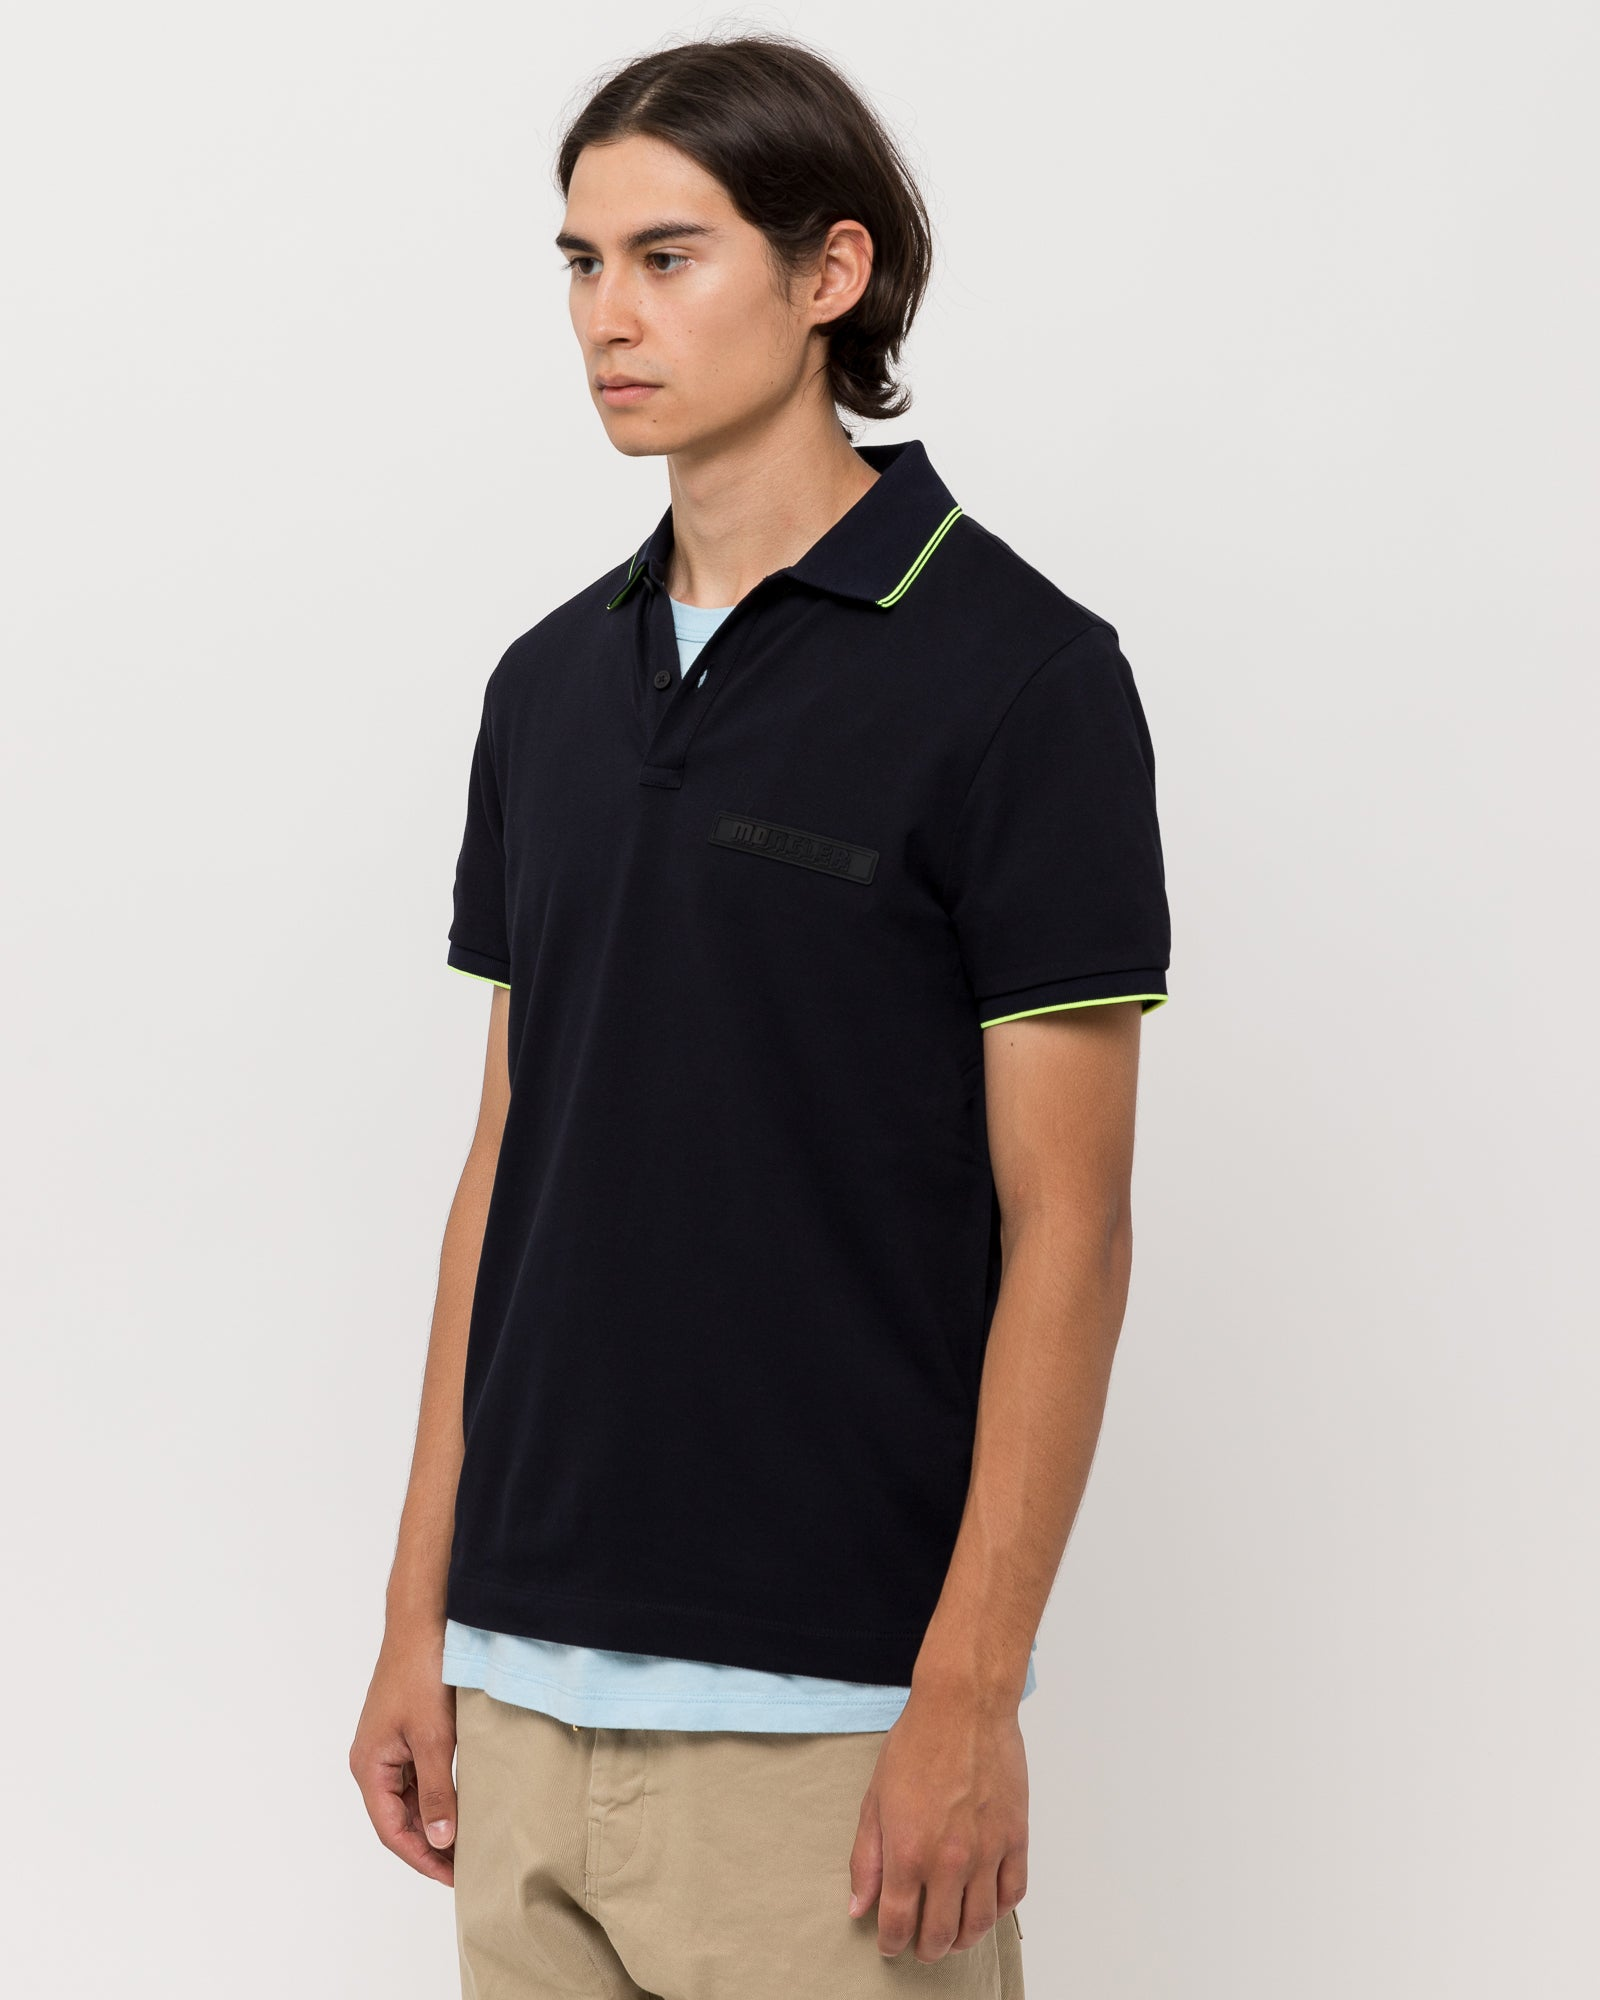 Polo Shirt in Navy